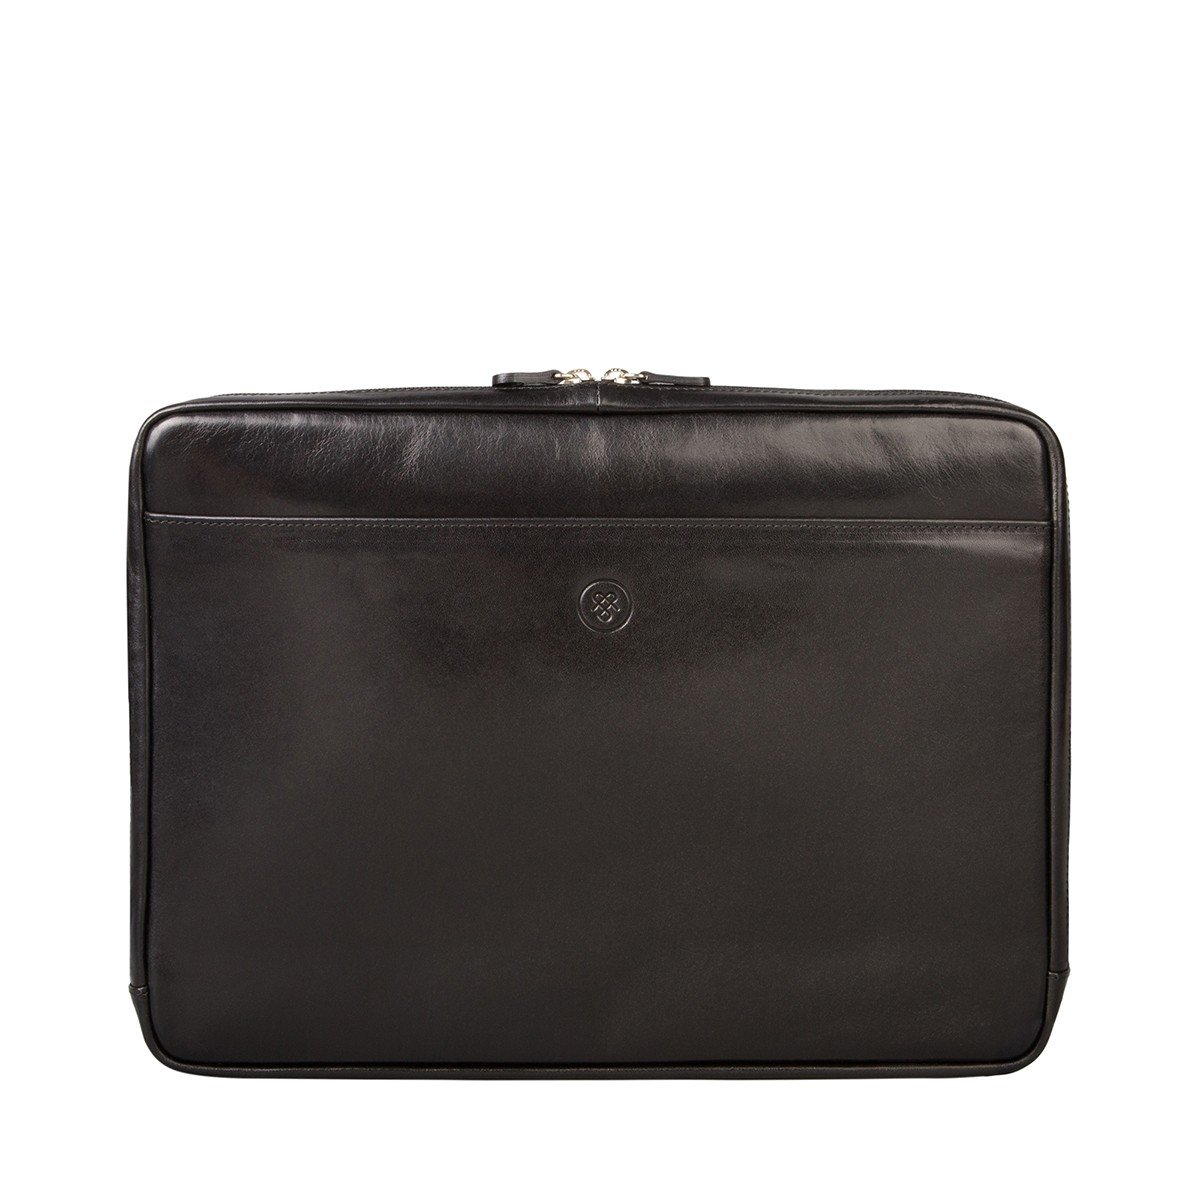 Maxwell Scott Luxury Black Leather 15 inch Laptop Sleeve (The Verzino) - One Size